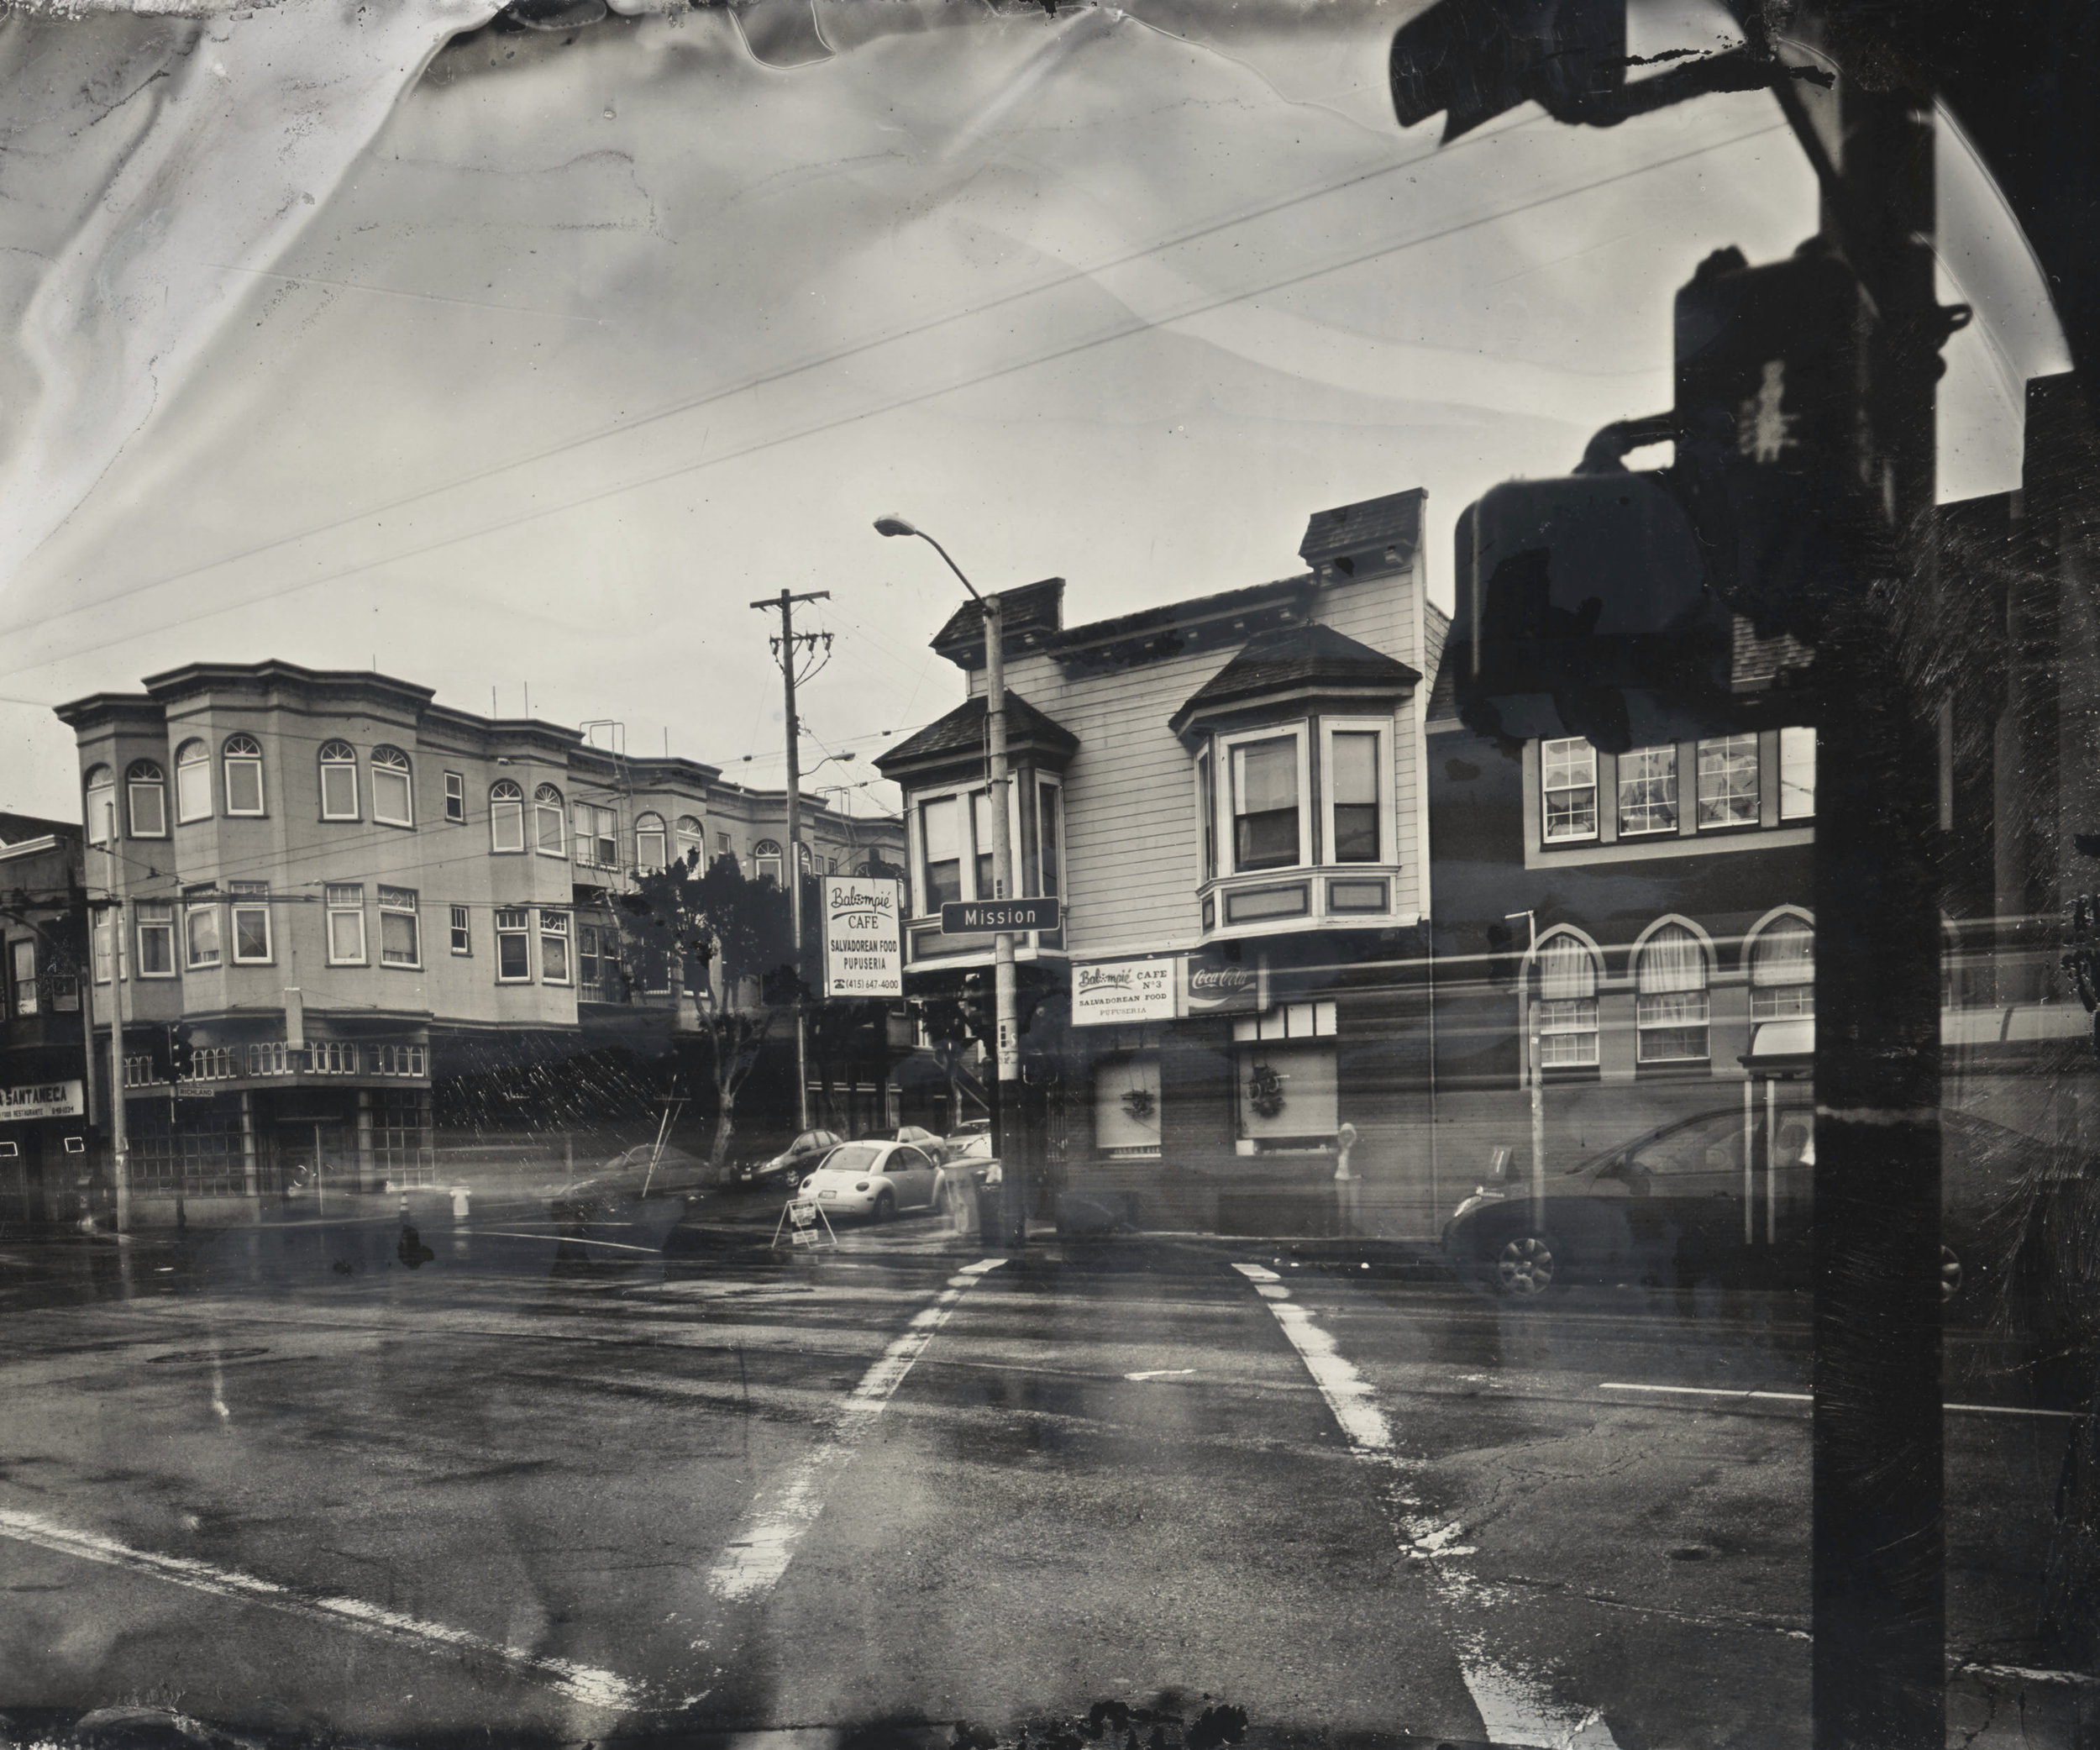 Corner 01: Mission and Richland, 2013